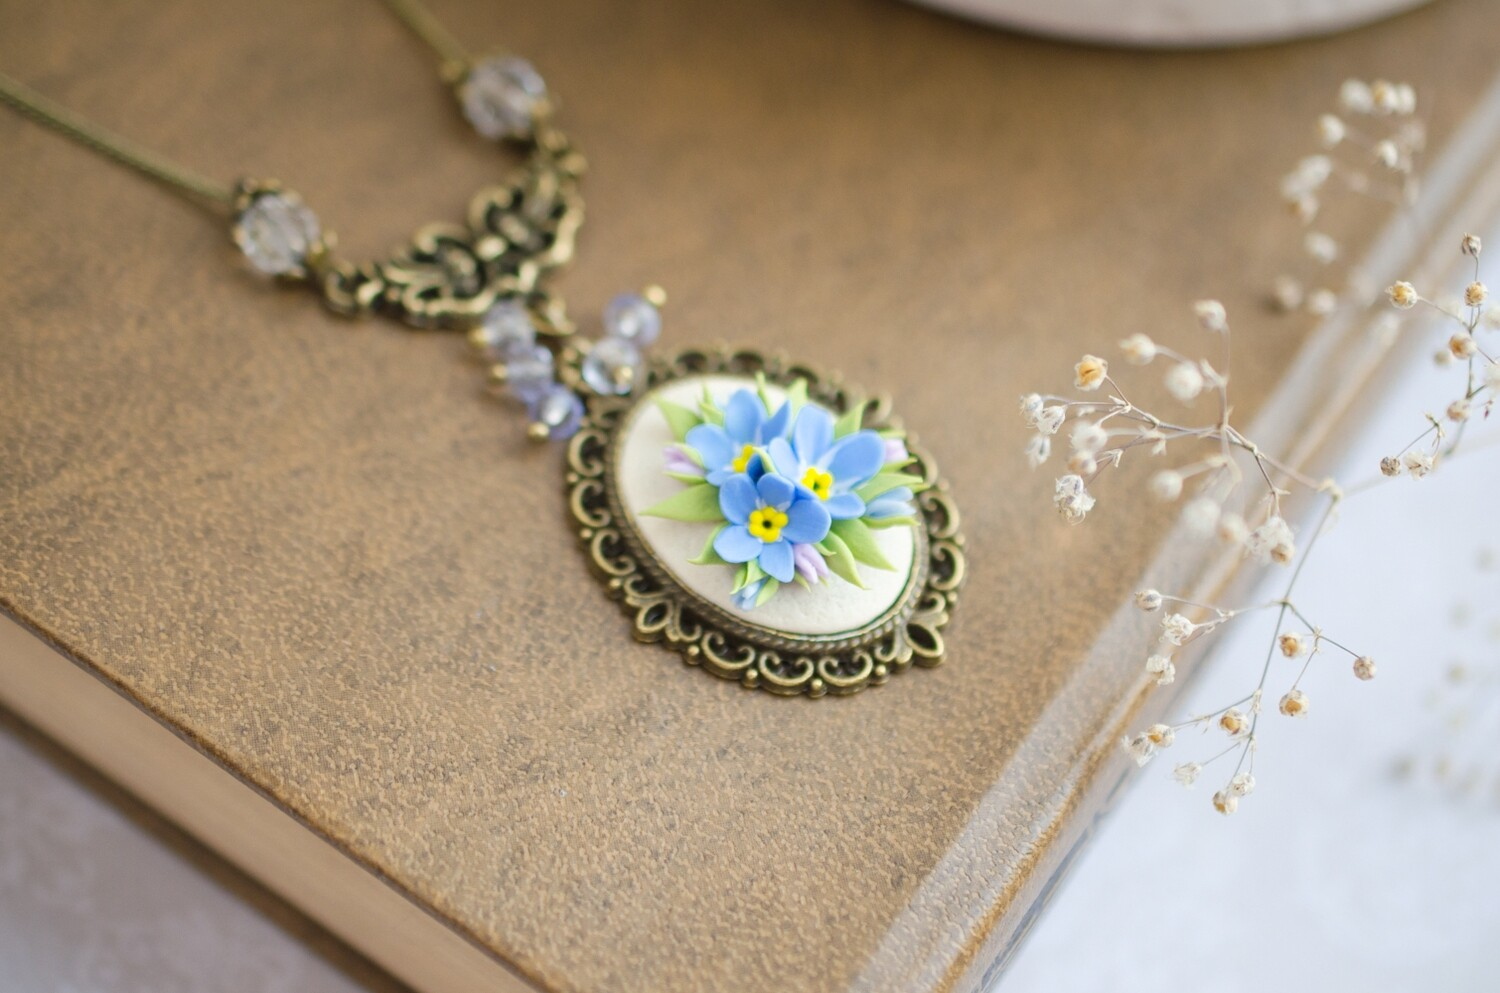 Forget me not necklace, Blue myosotis flowers pendant, mother's day gift